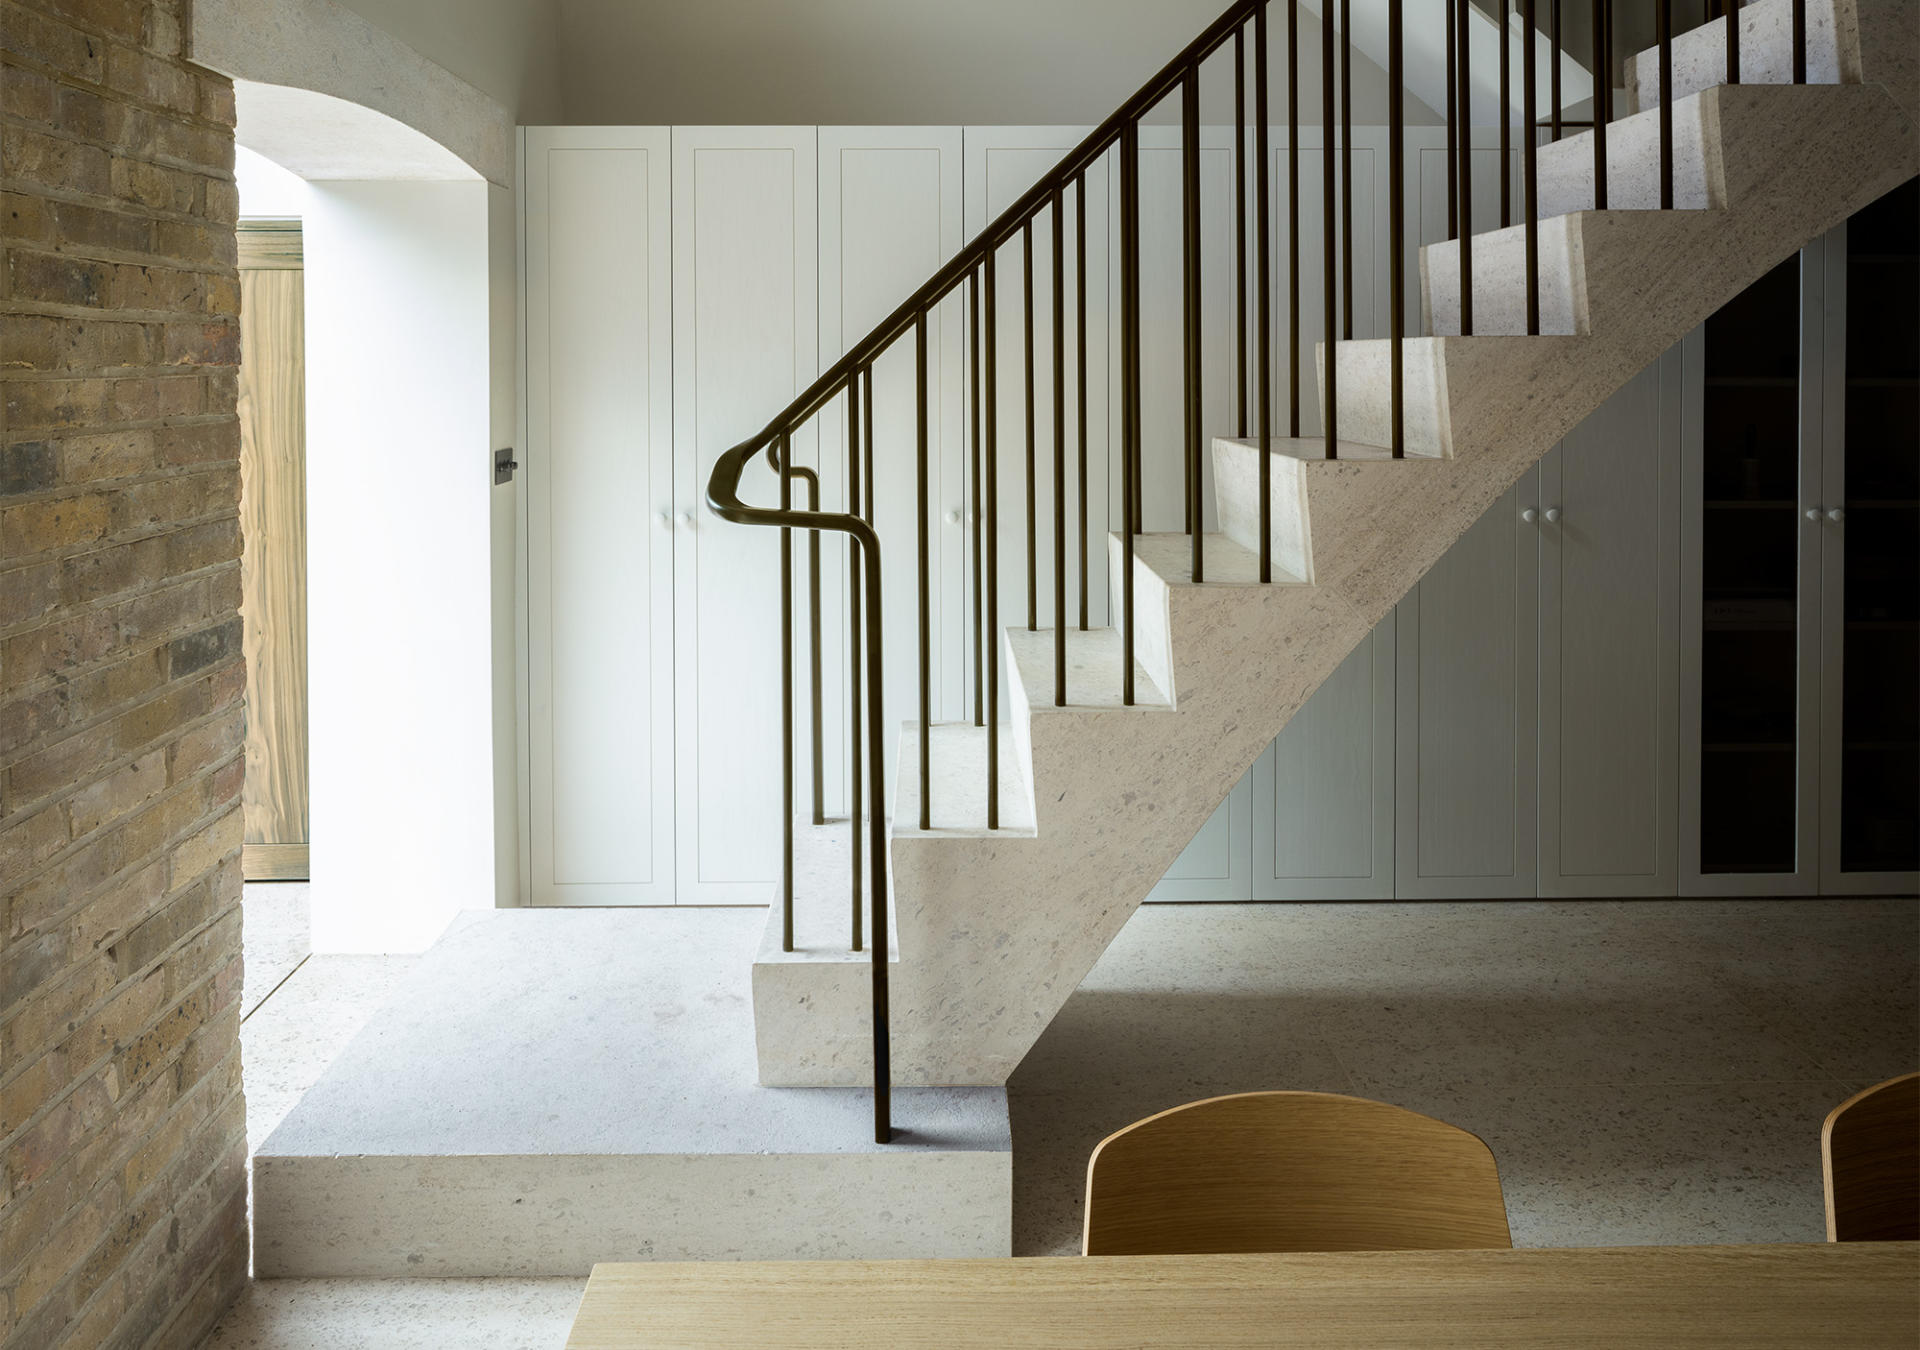 West Architecture Islington project featuring staircase balustrade made by Collier Webb